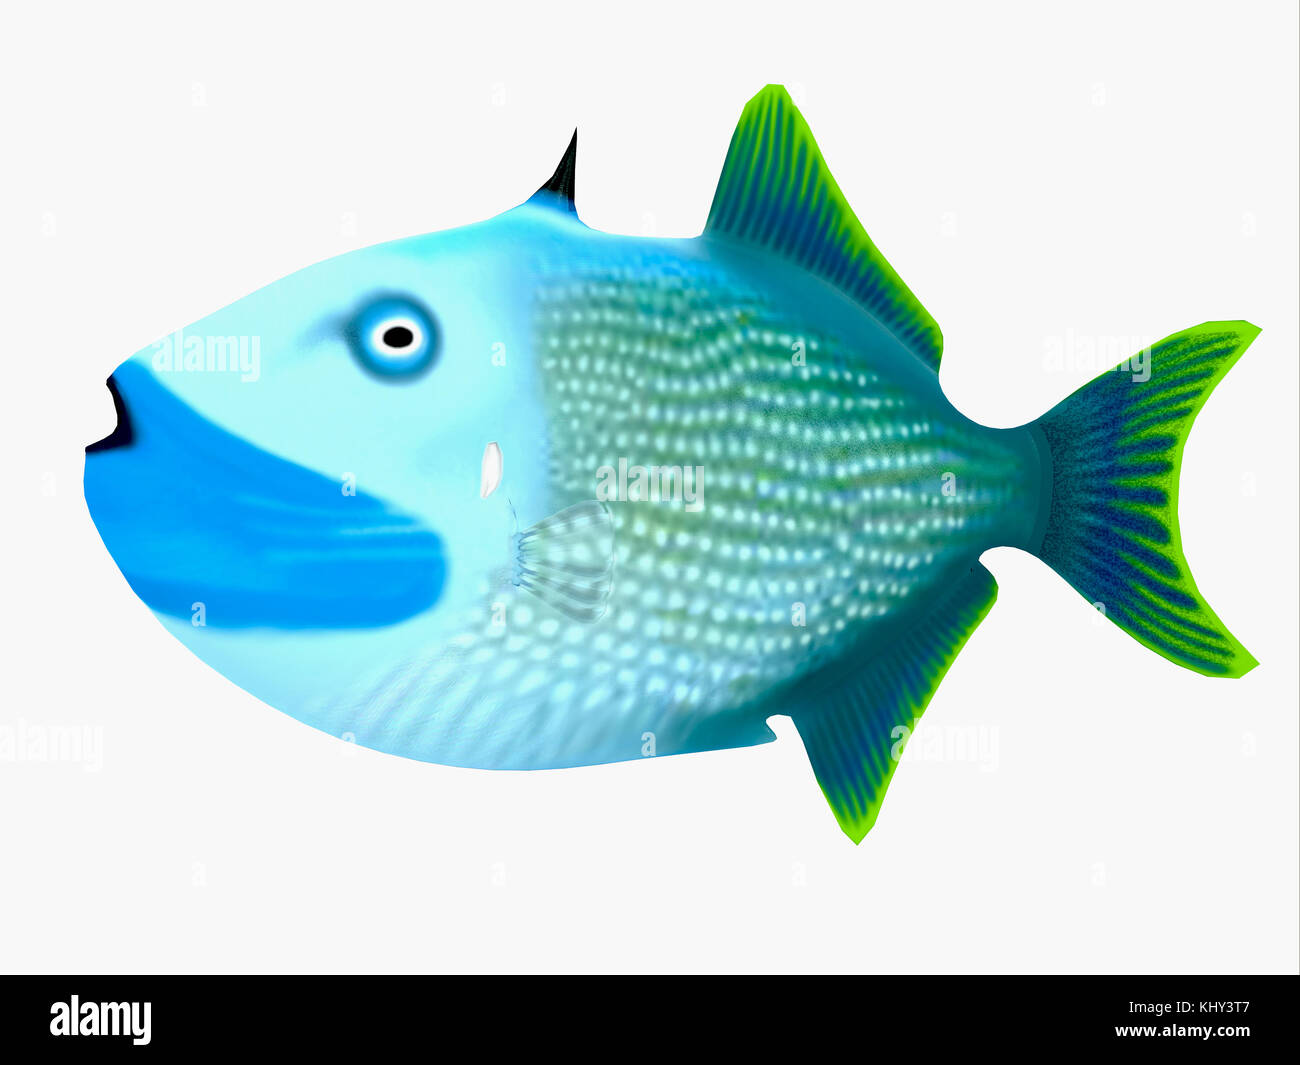 Blue Jaw Triggerfish - The Blue Jaw Triggerfish is a saltwater species reef fish in tropical regions of major oceans. - Stock Image